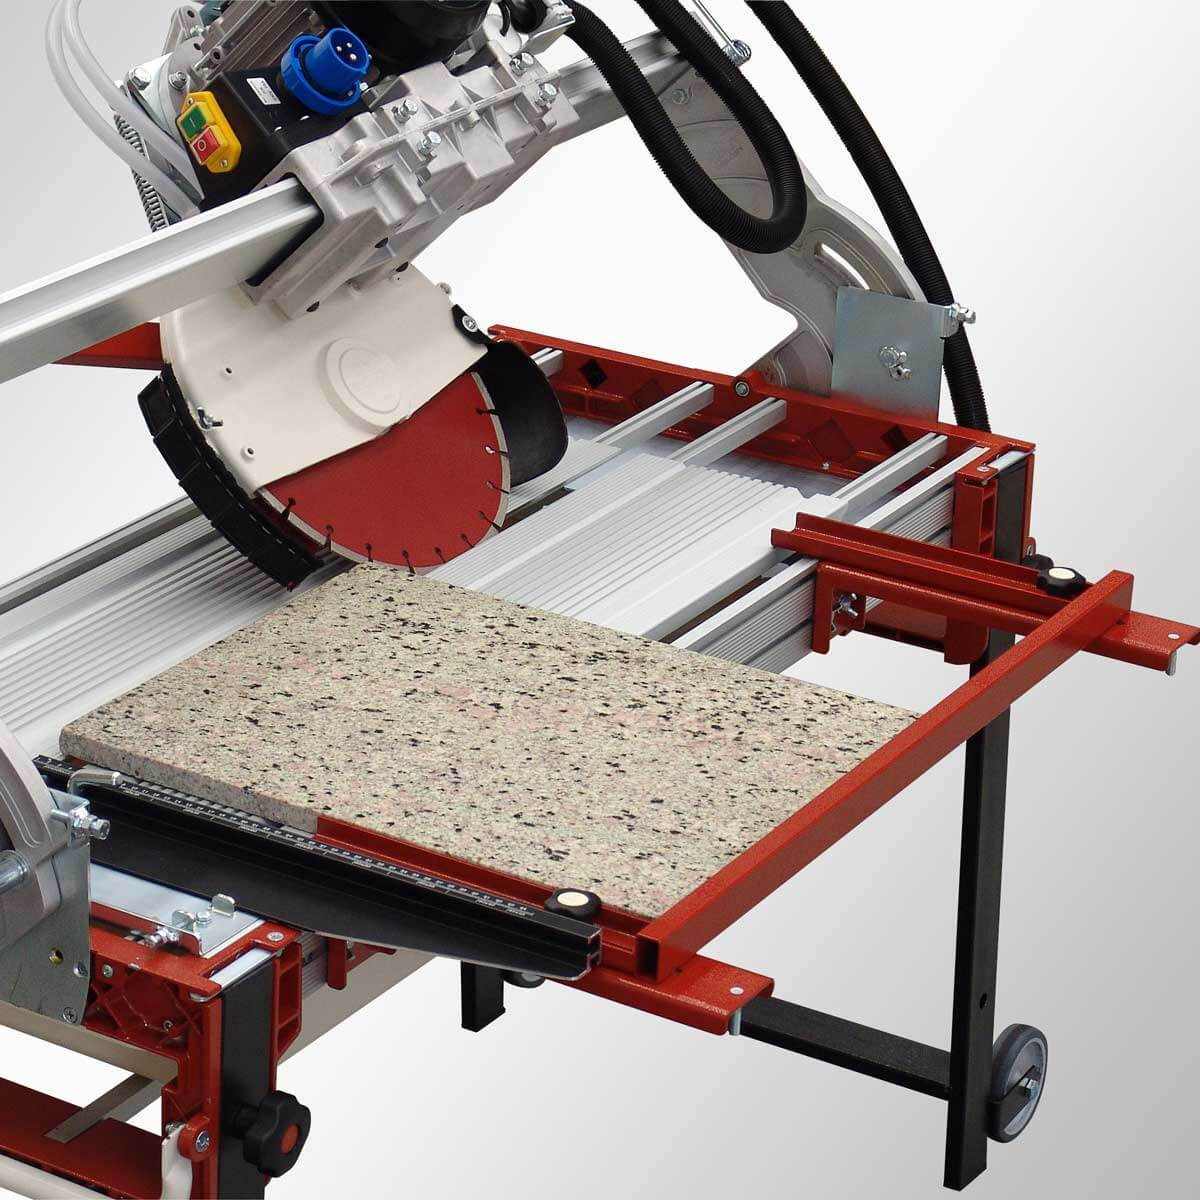 Raimondi Zipper Advanced Rail Saw optional side extension square